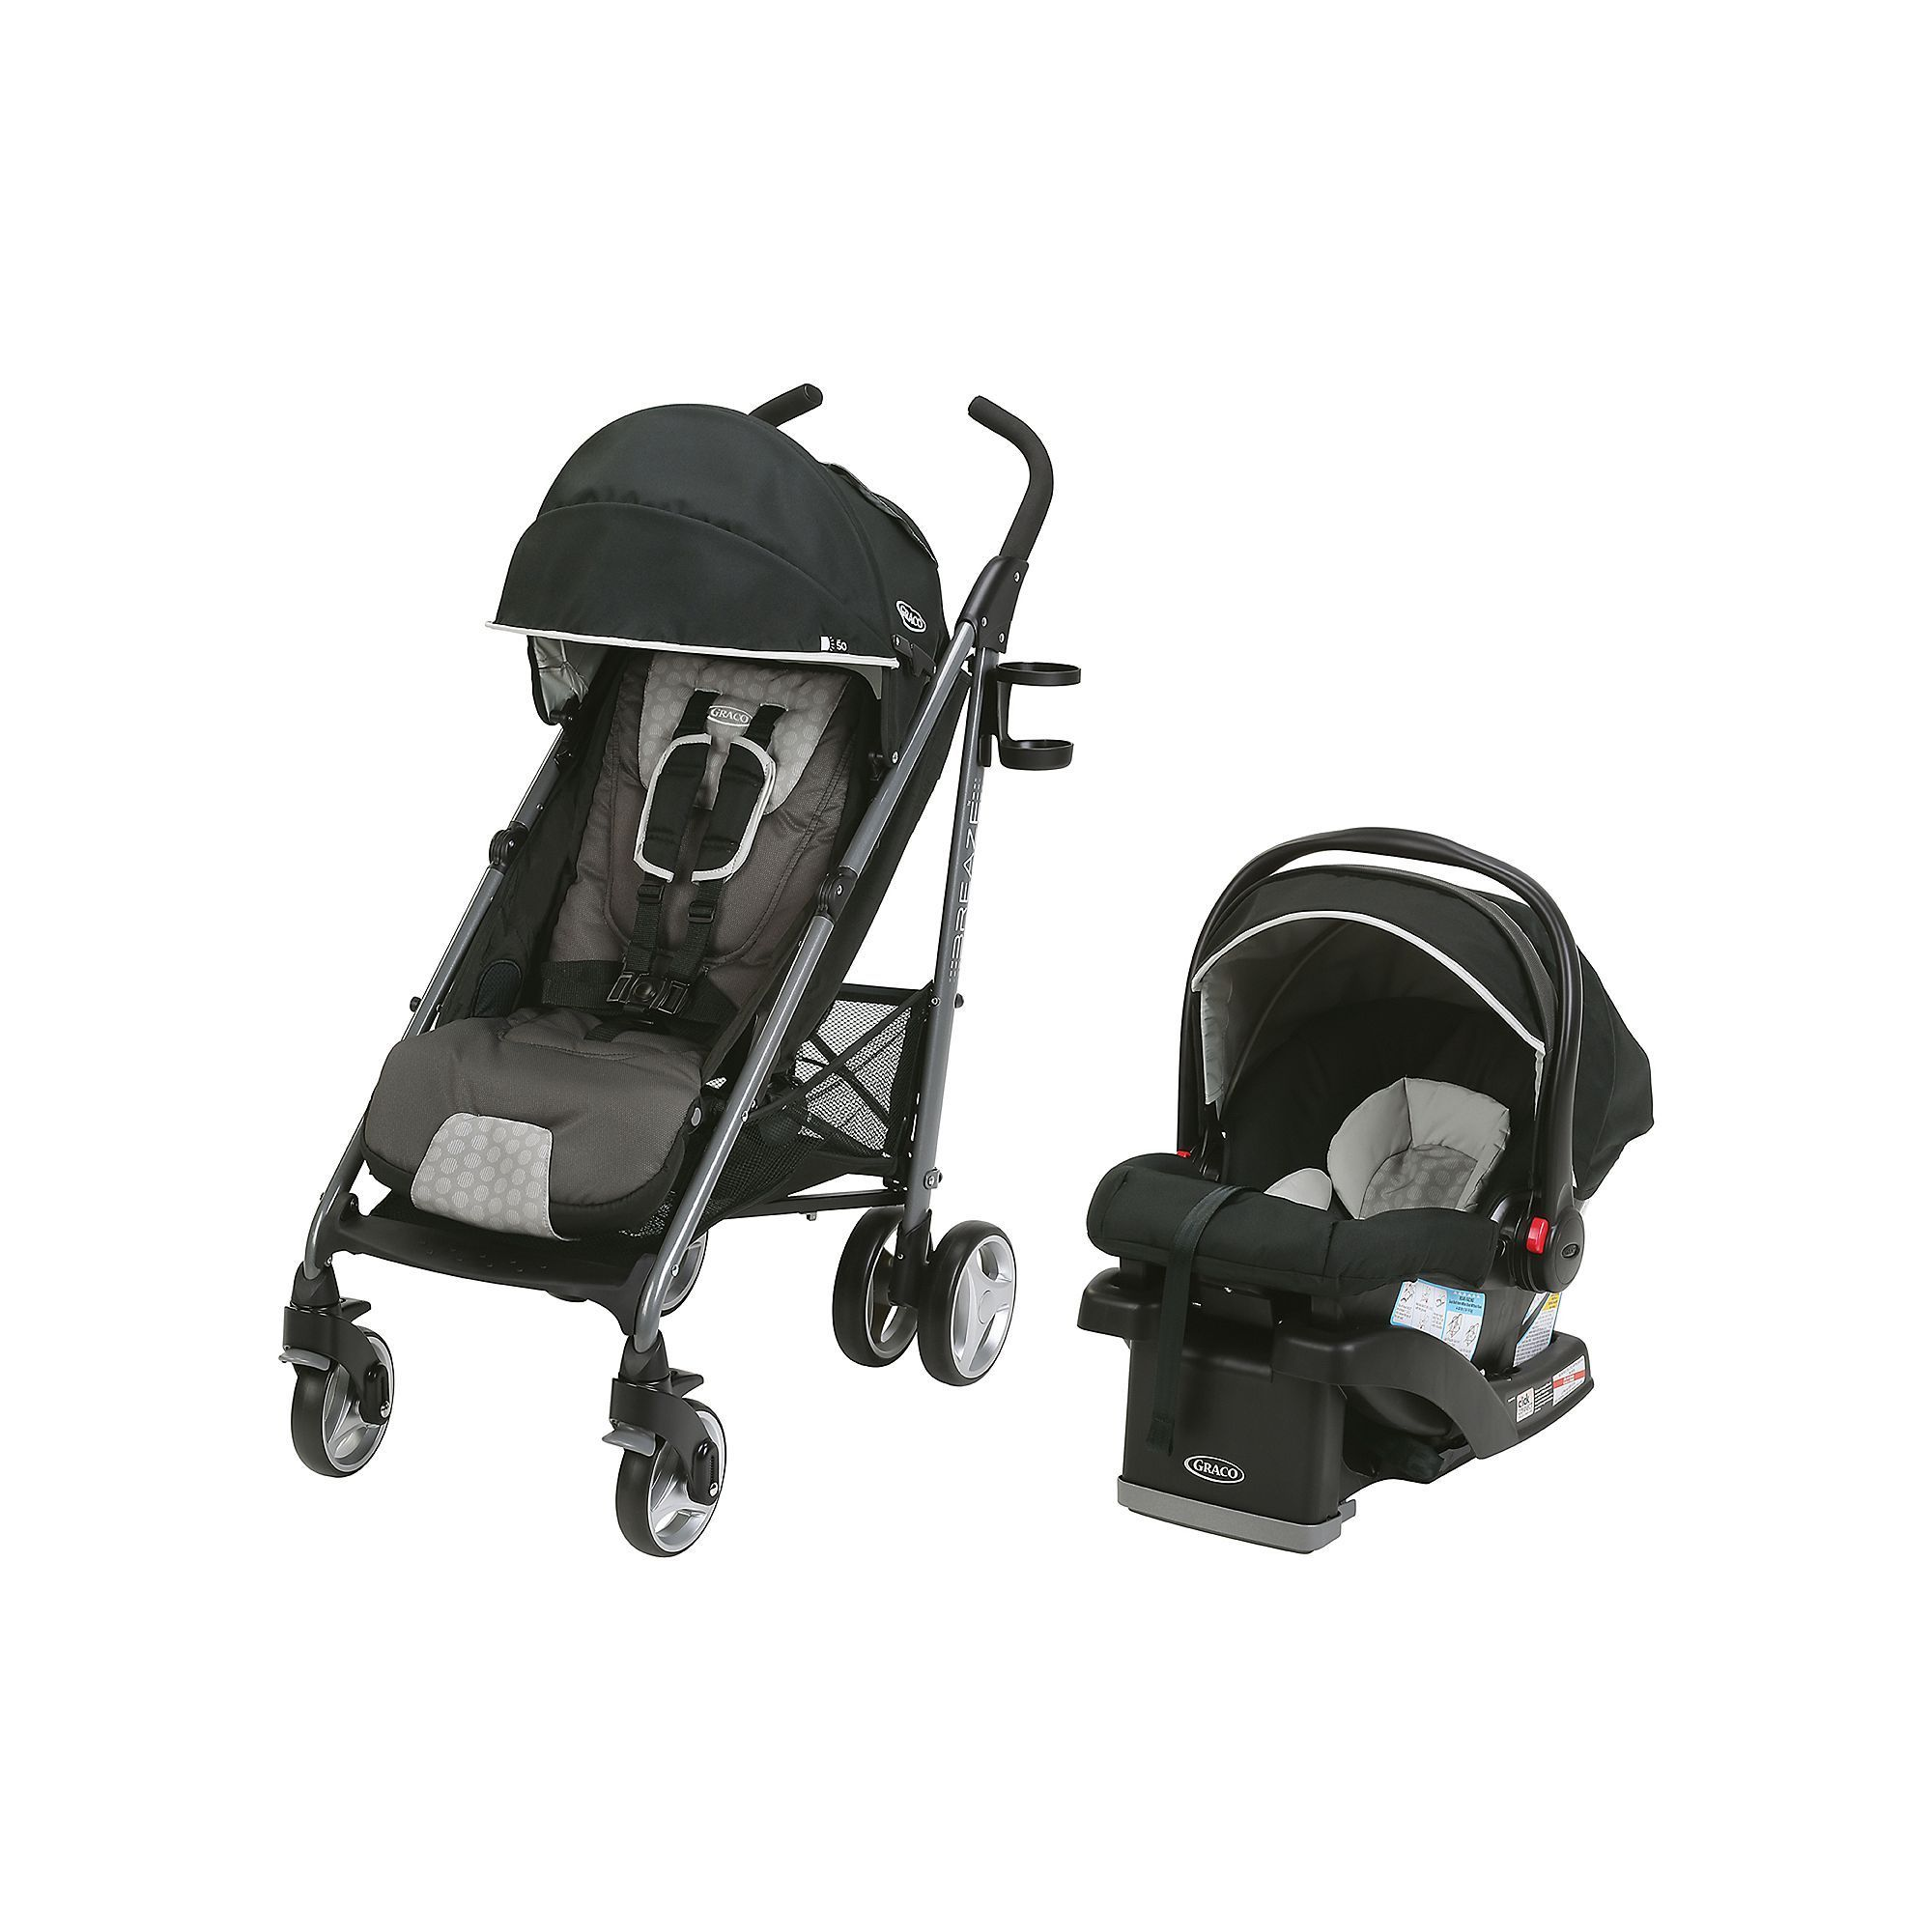 Graco Breaze Click Connect Travel System Baby car seats